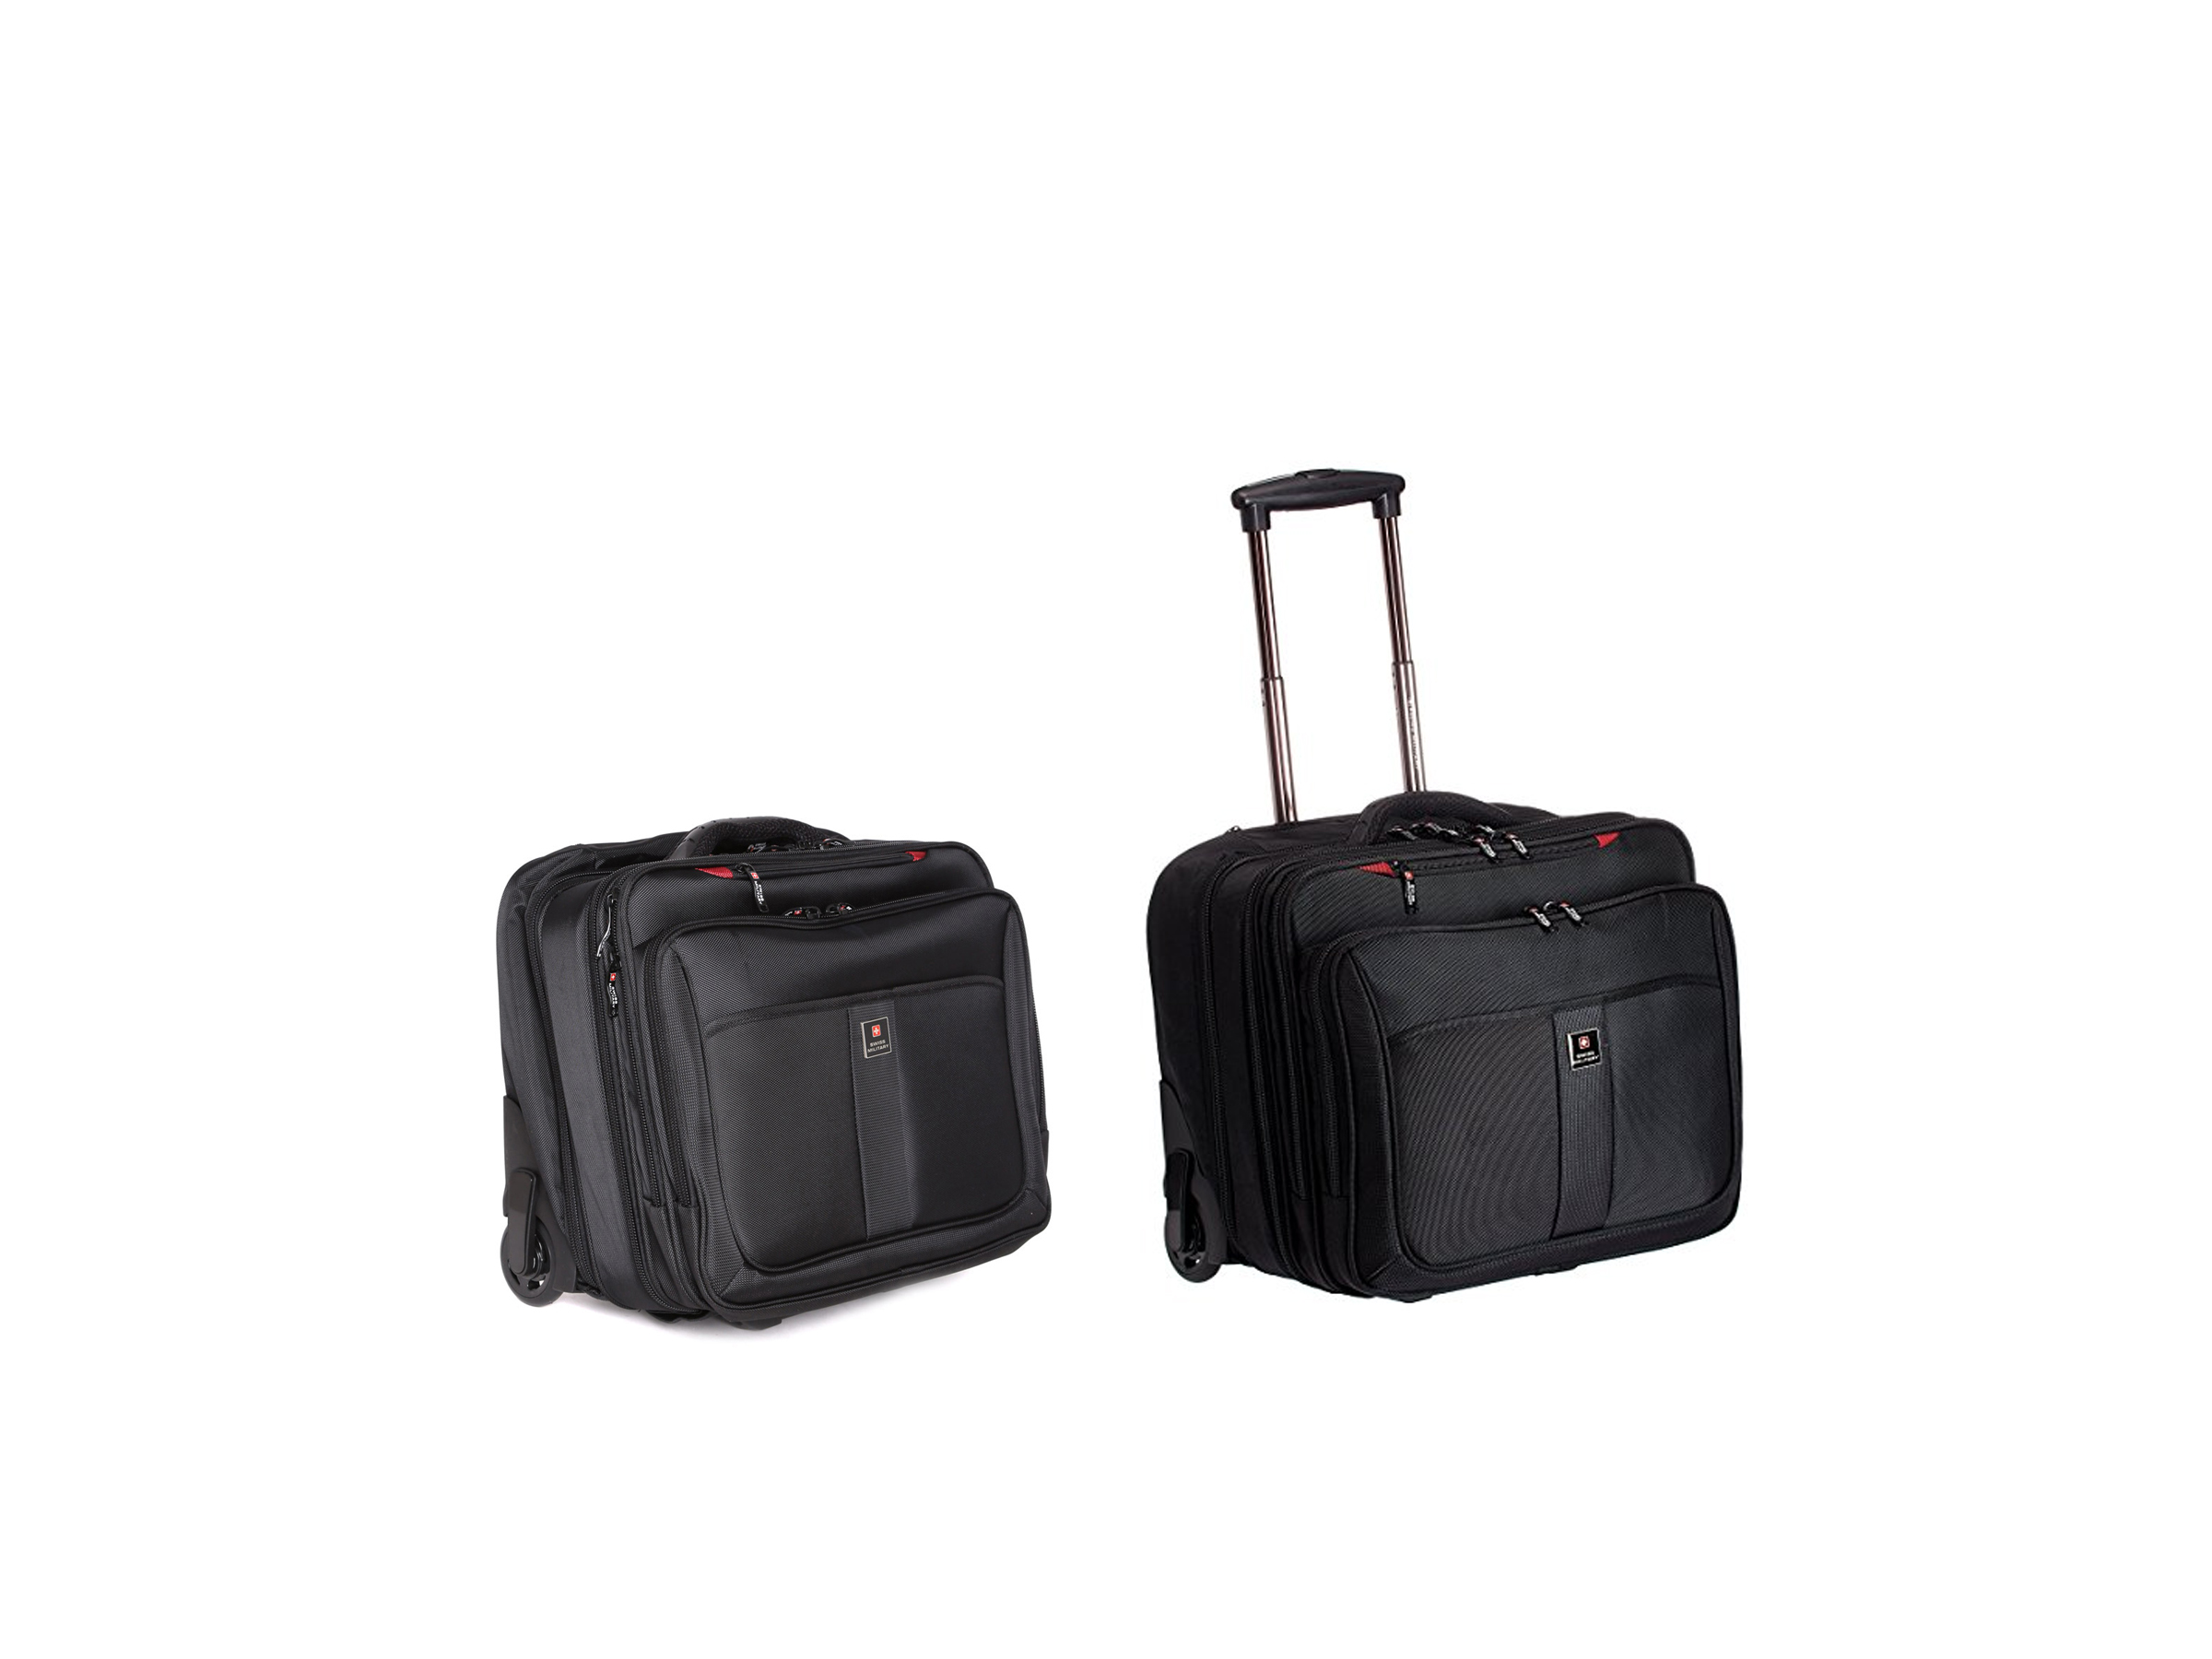 d82a52595d LTB3 – TROLLEY BAG - 8490 - Compliments